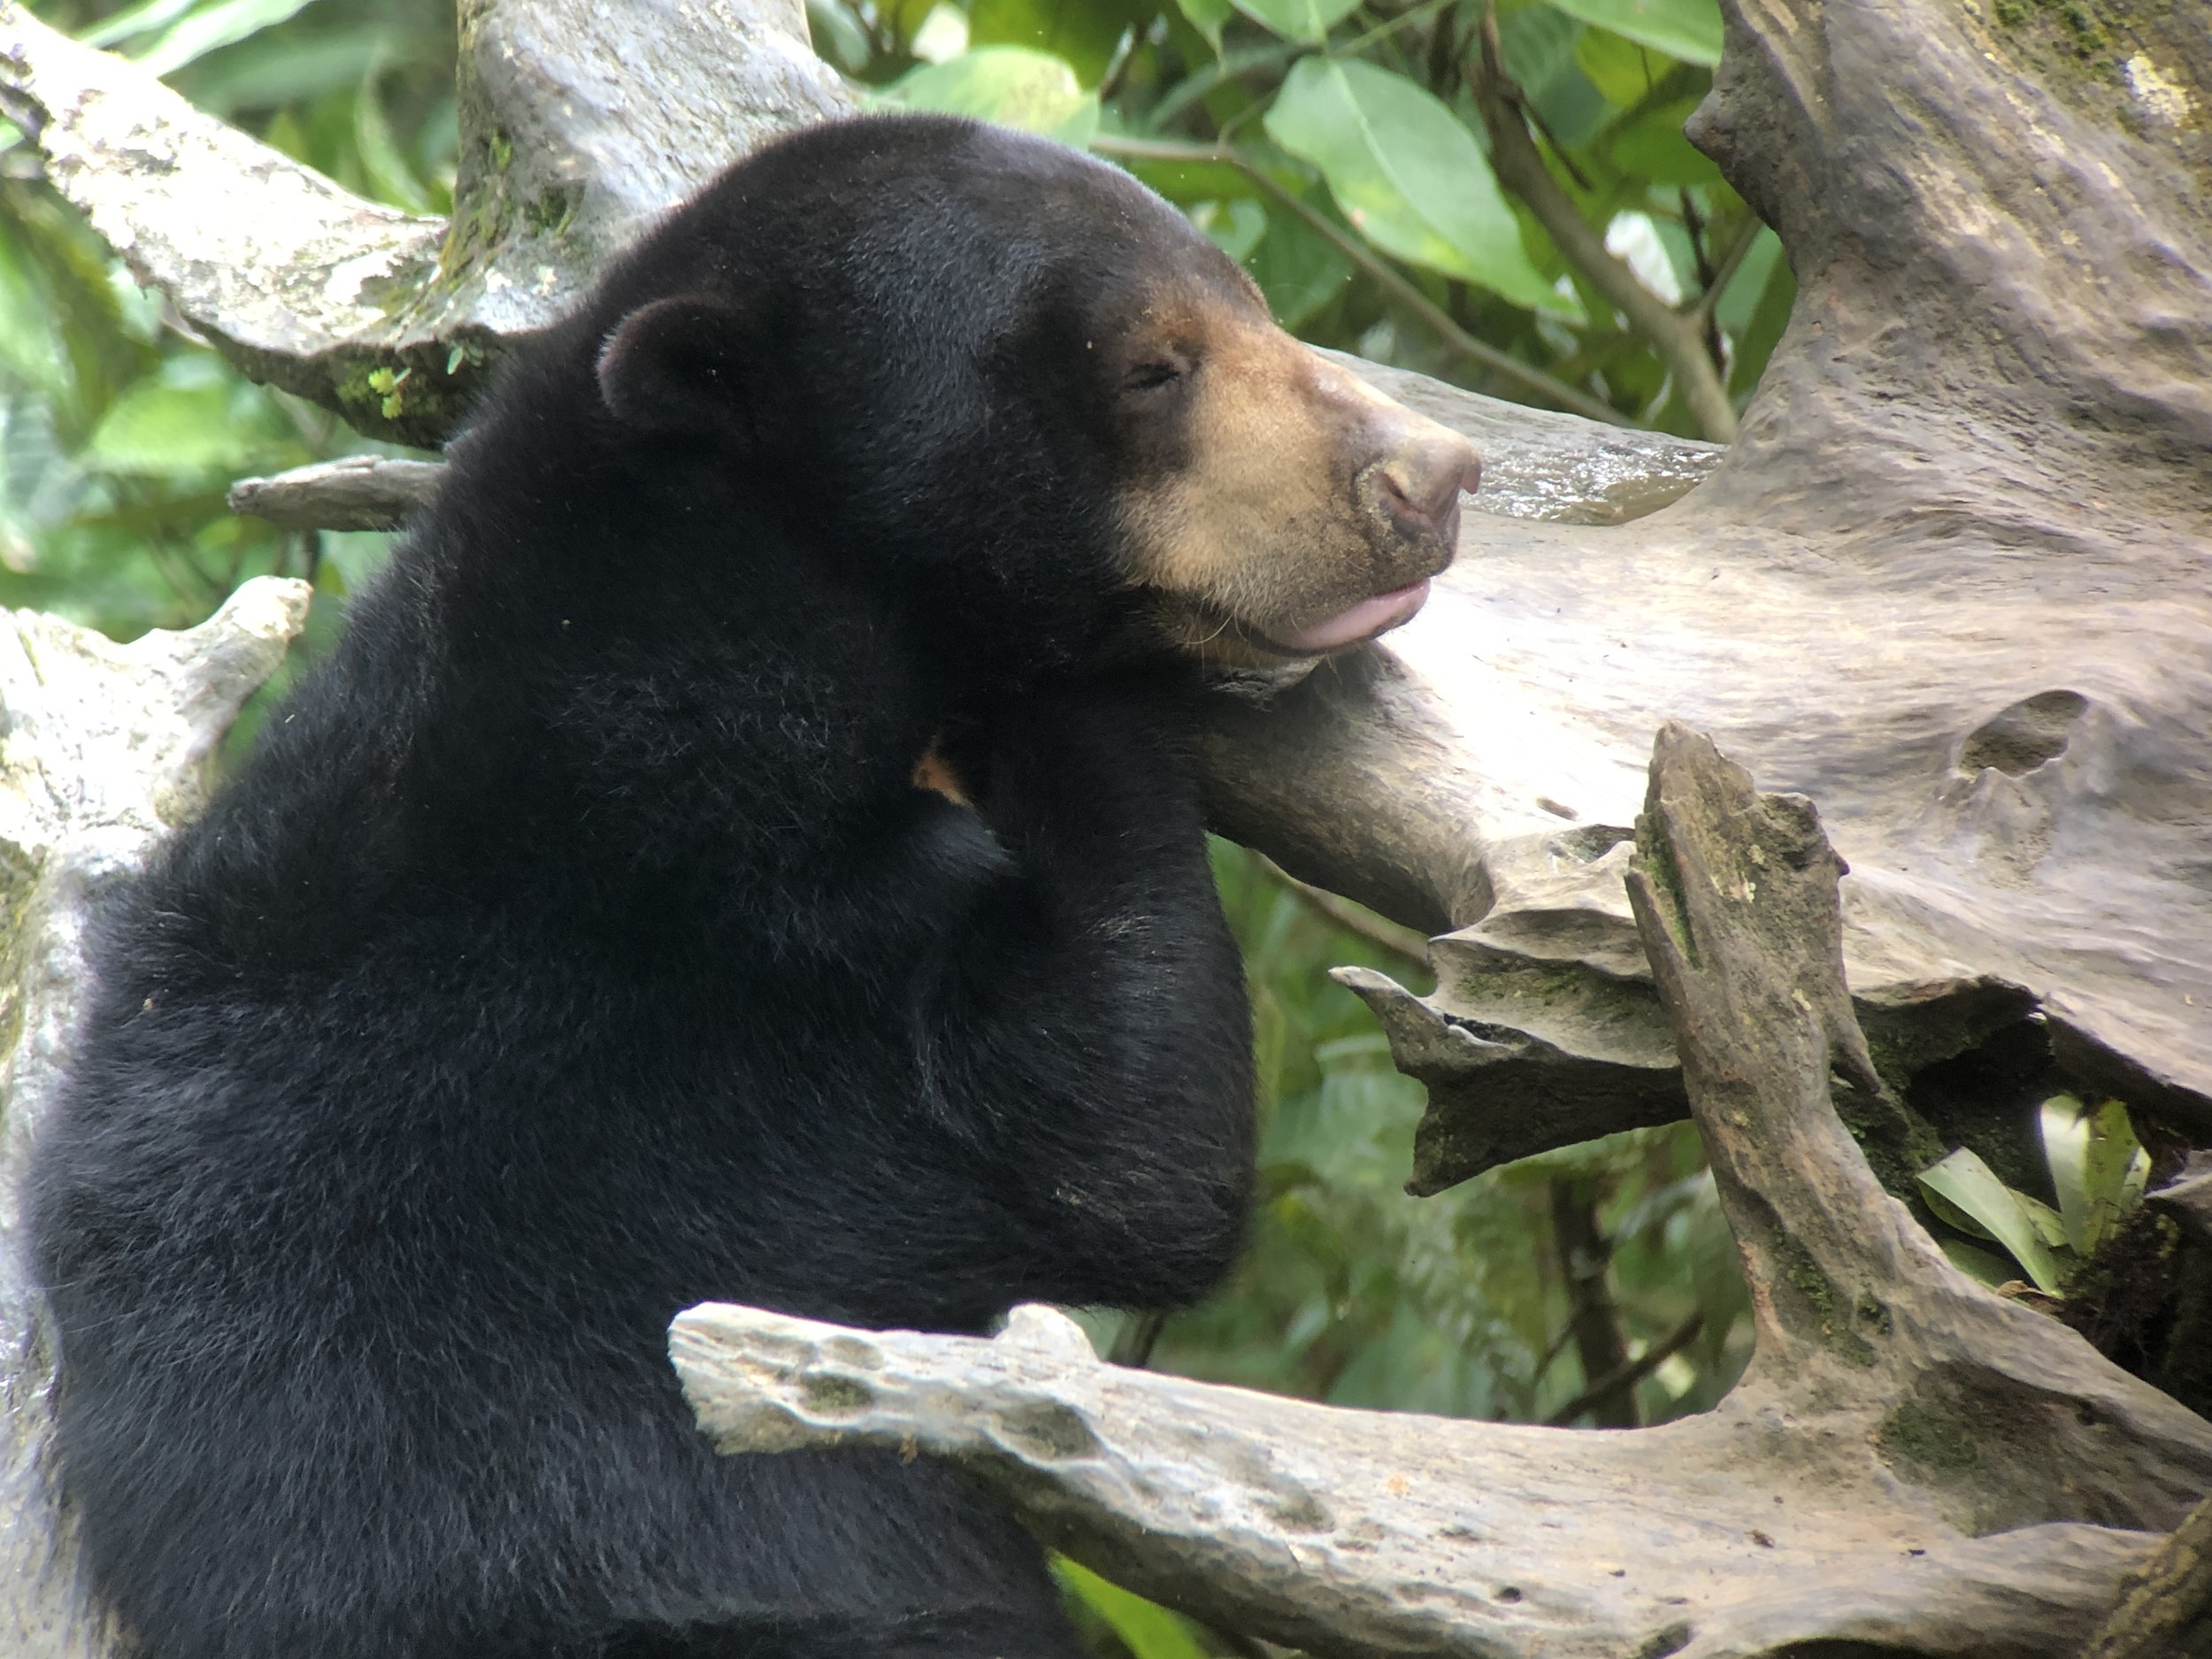 The world's smallest beat, the sun-bear are also residents at Sepilok